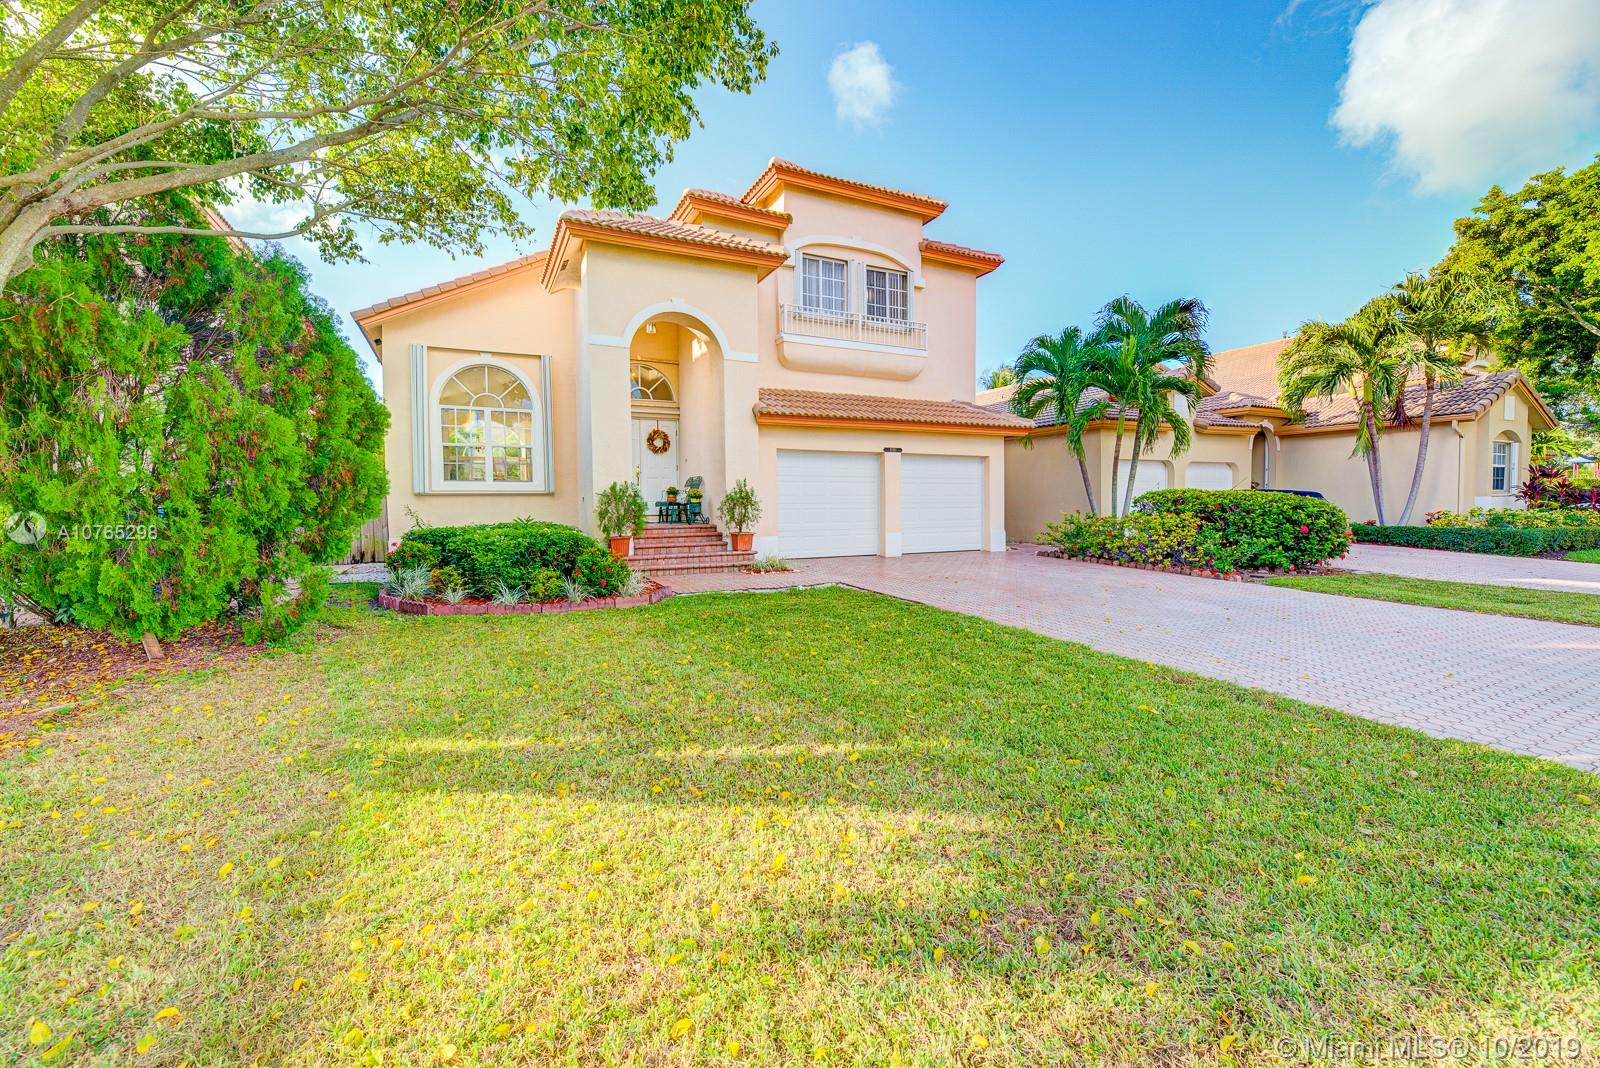 9790 NW 31st St 33172 - One of Doral Homes for Sale